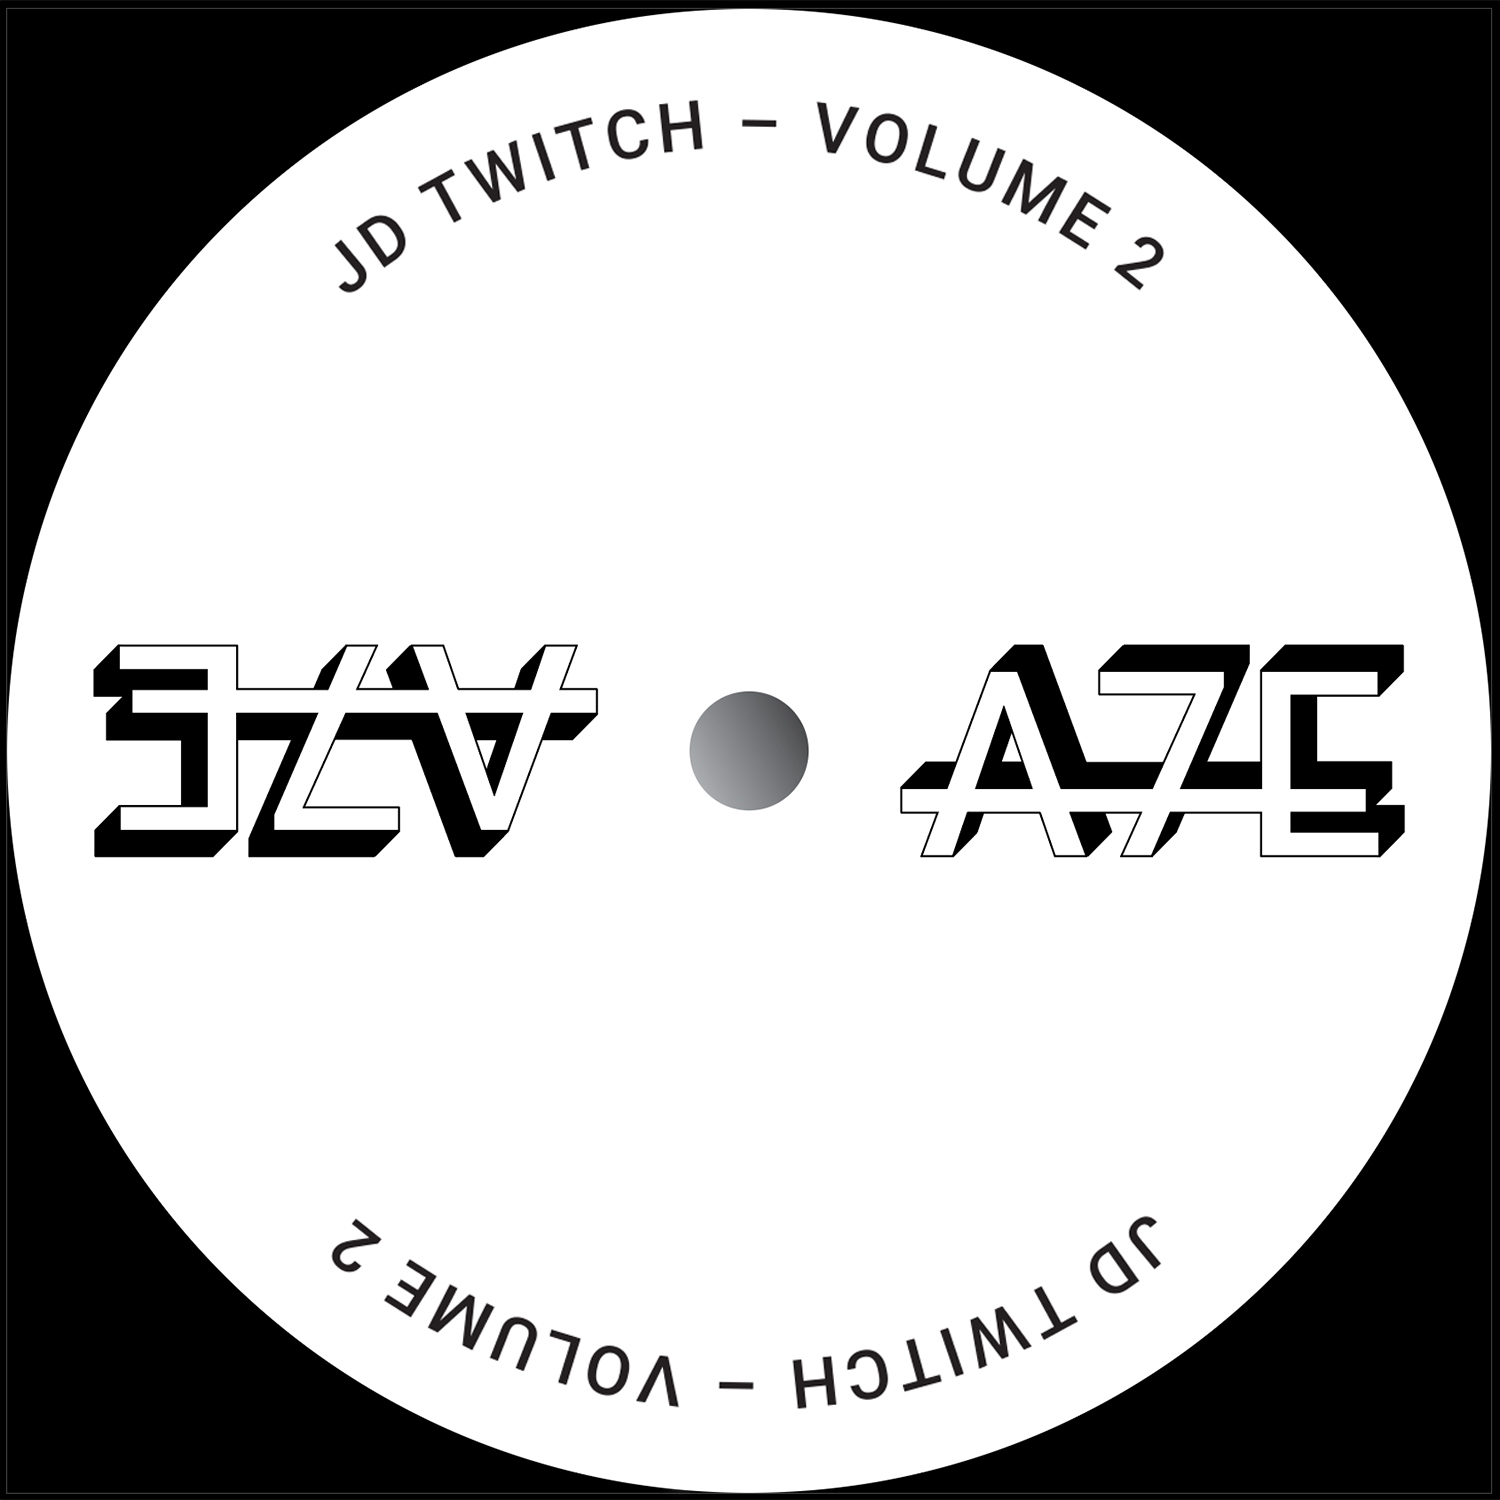 JD Twitch/A7 EDITS VOL 2 12""